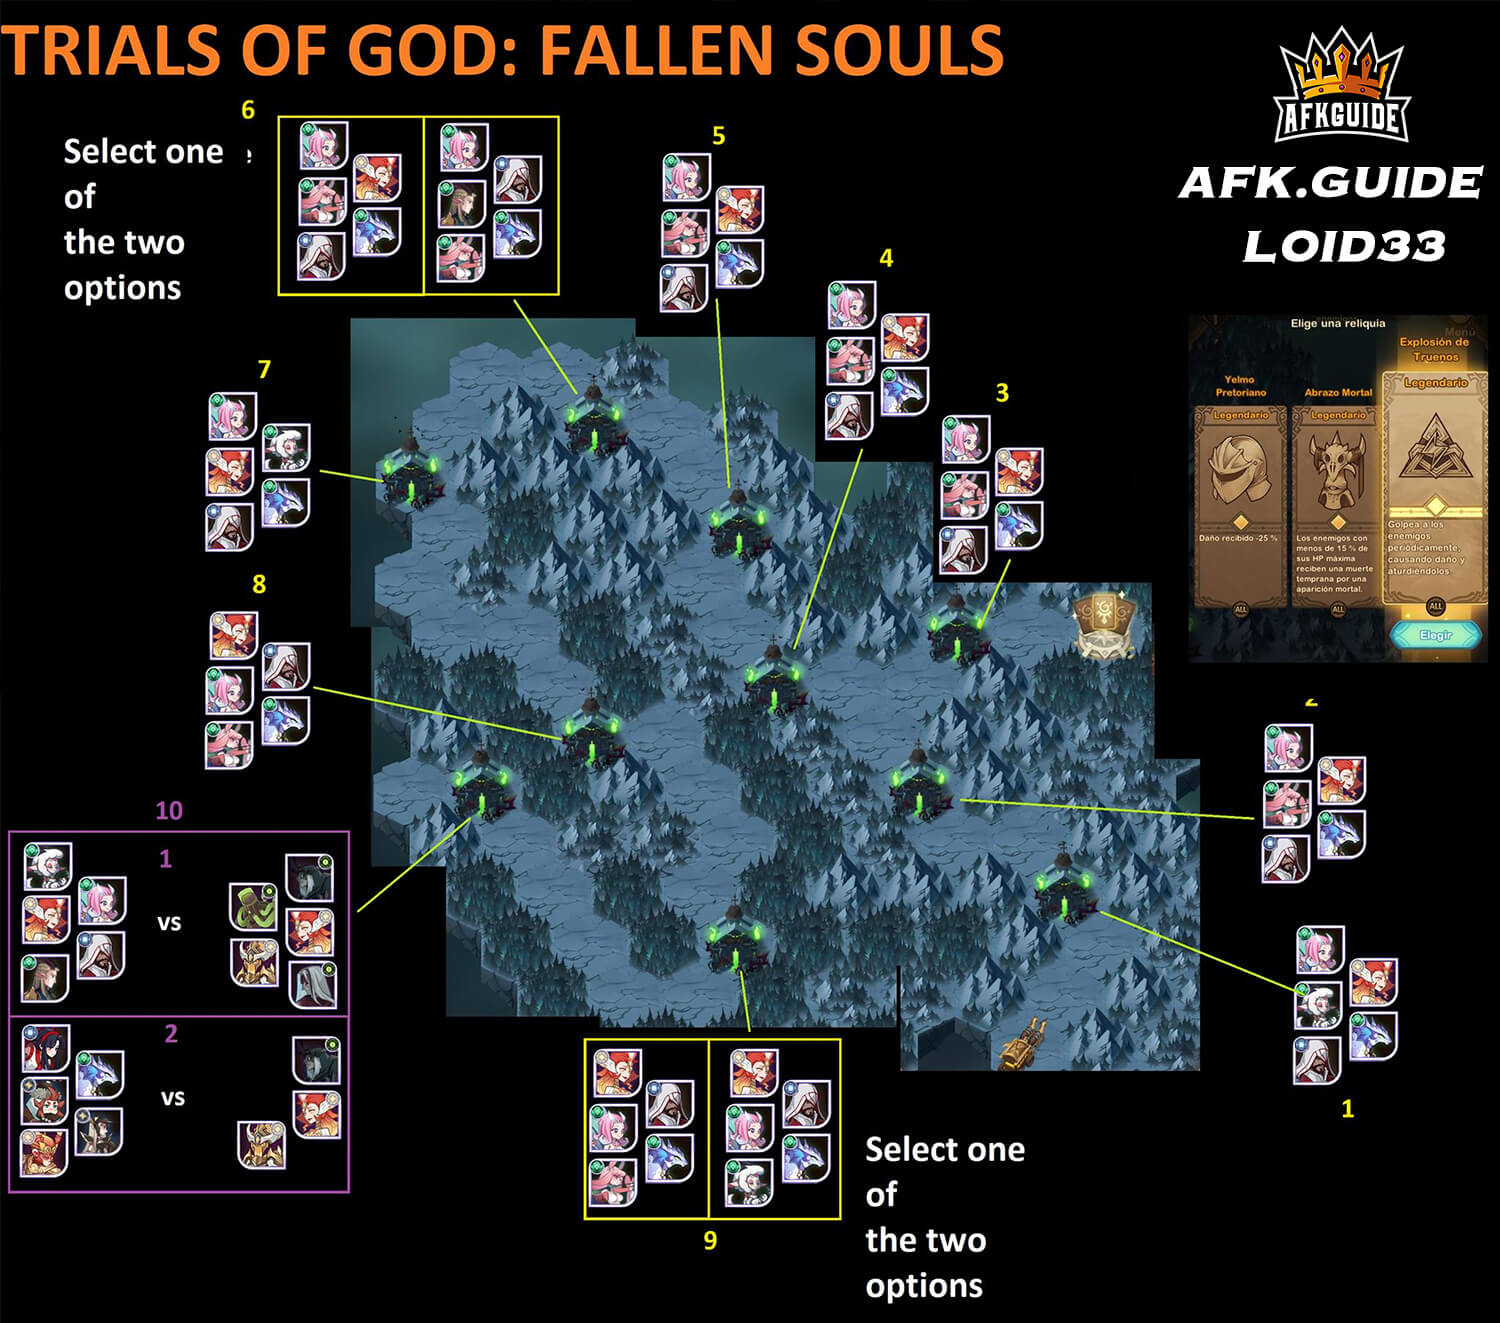 trials of god fallen souls